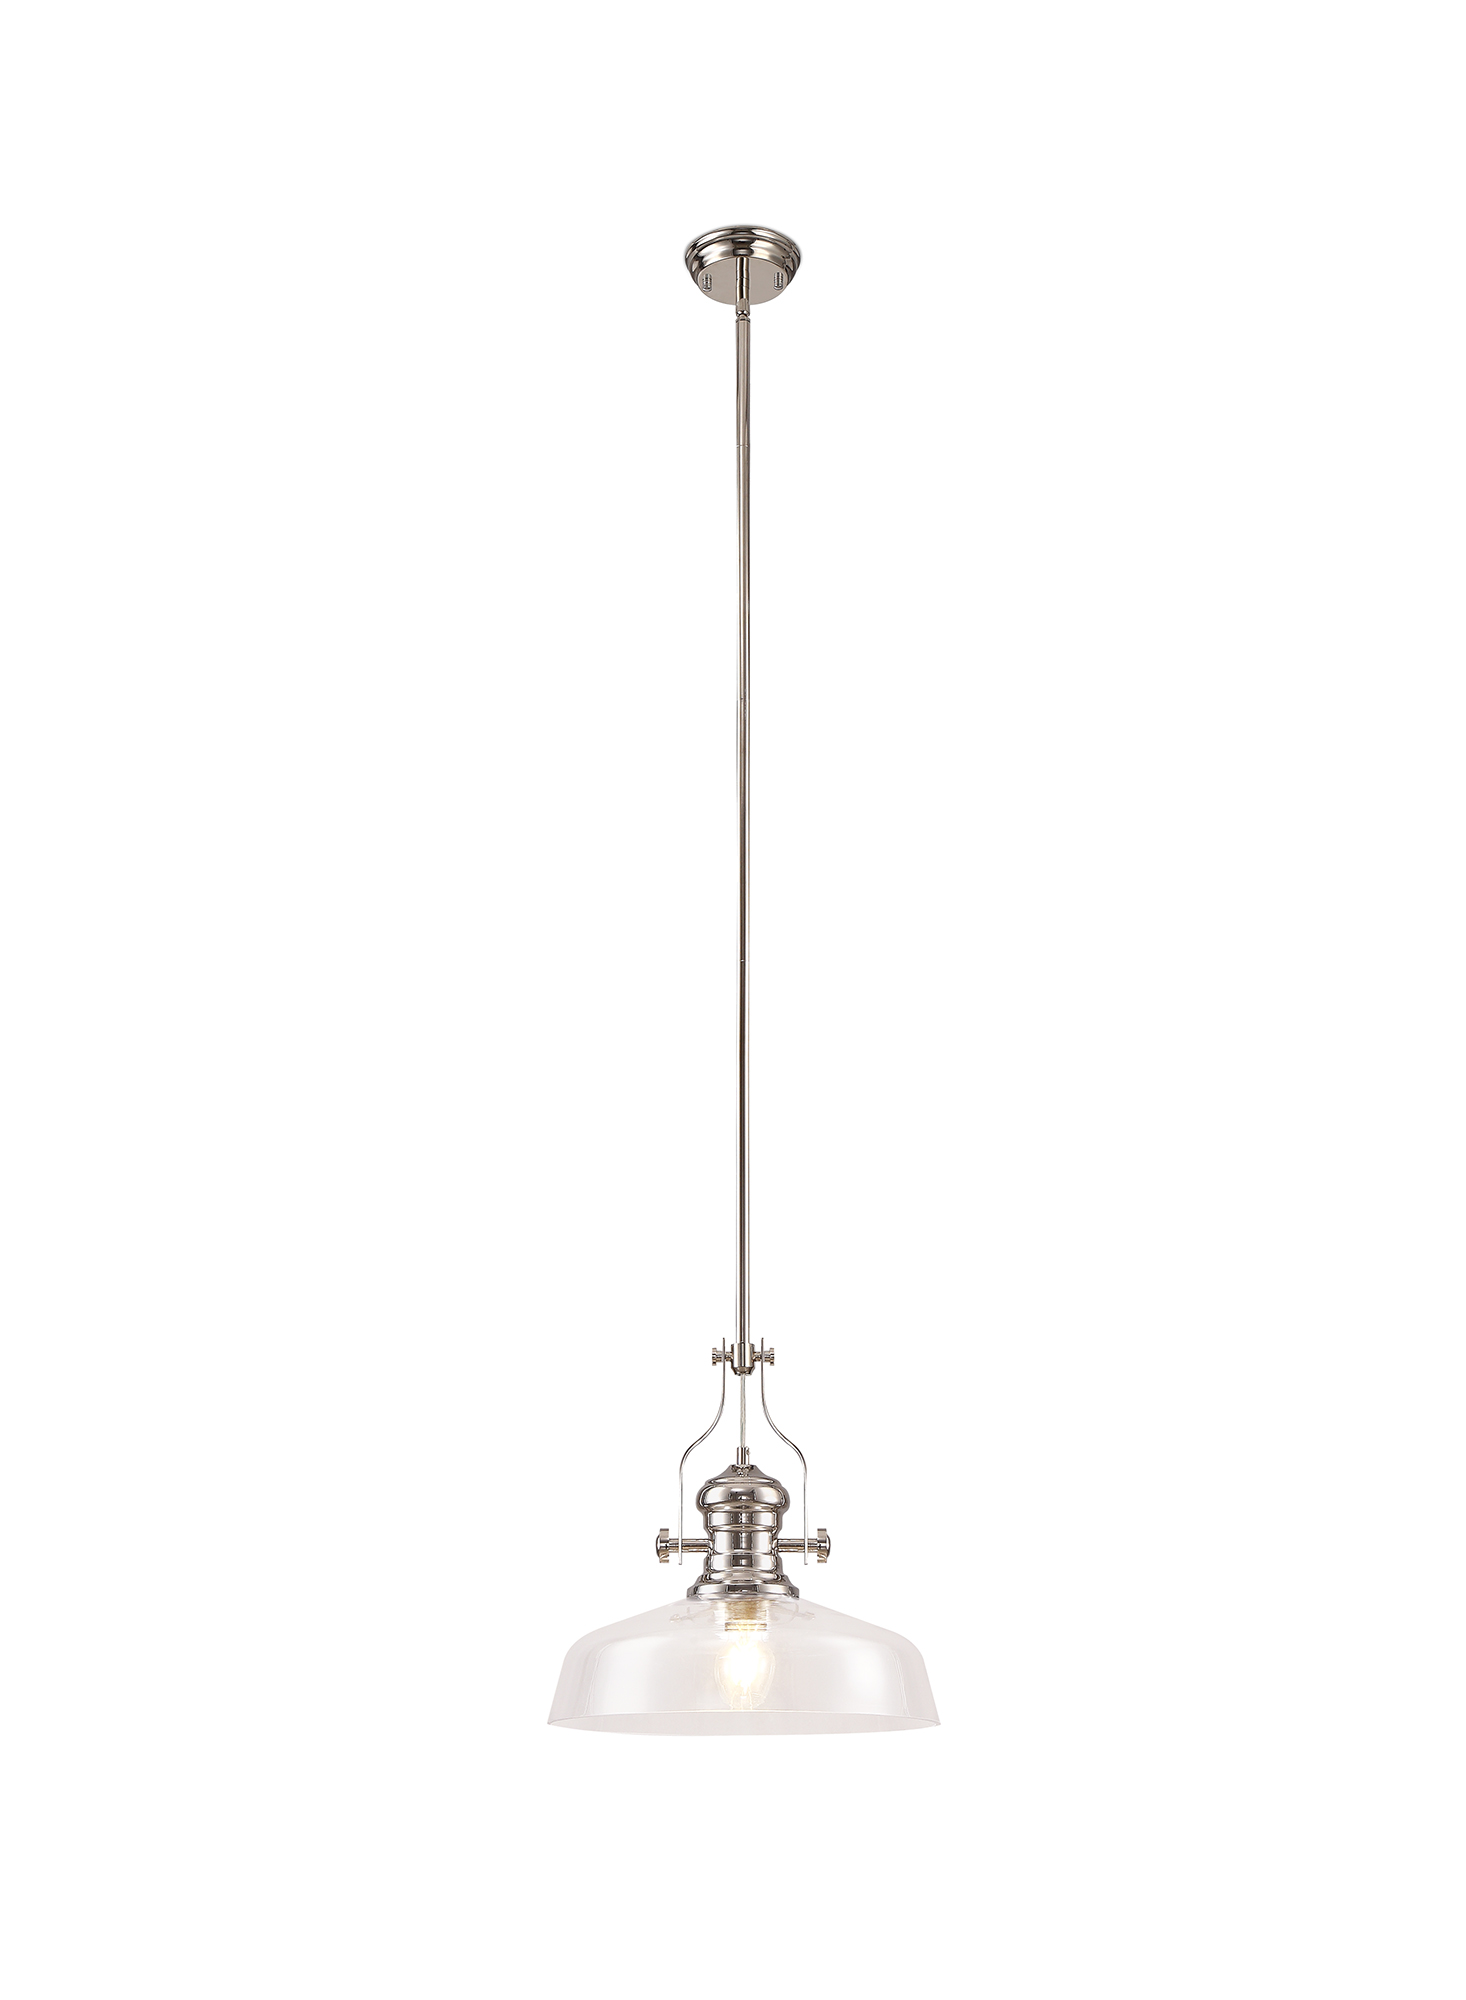 Pendant With 38cm Flat Round Shade, 1 x E27